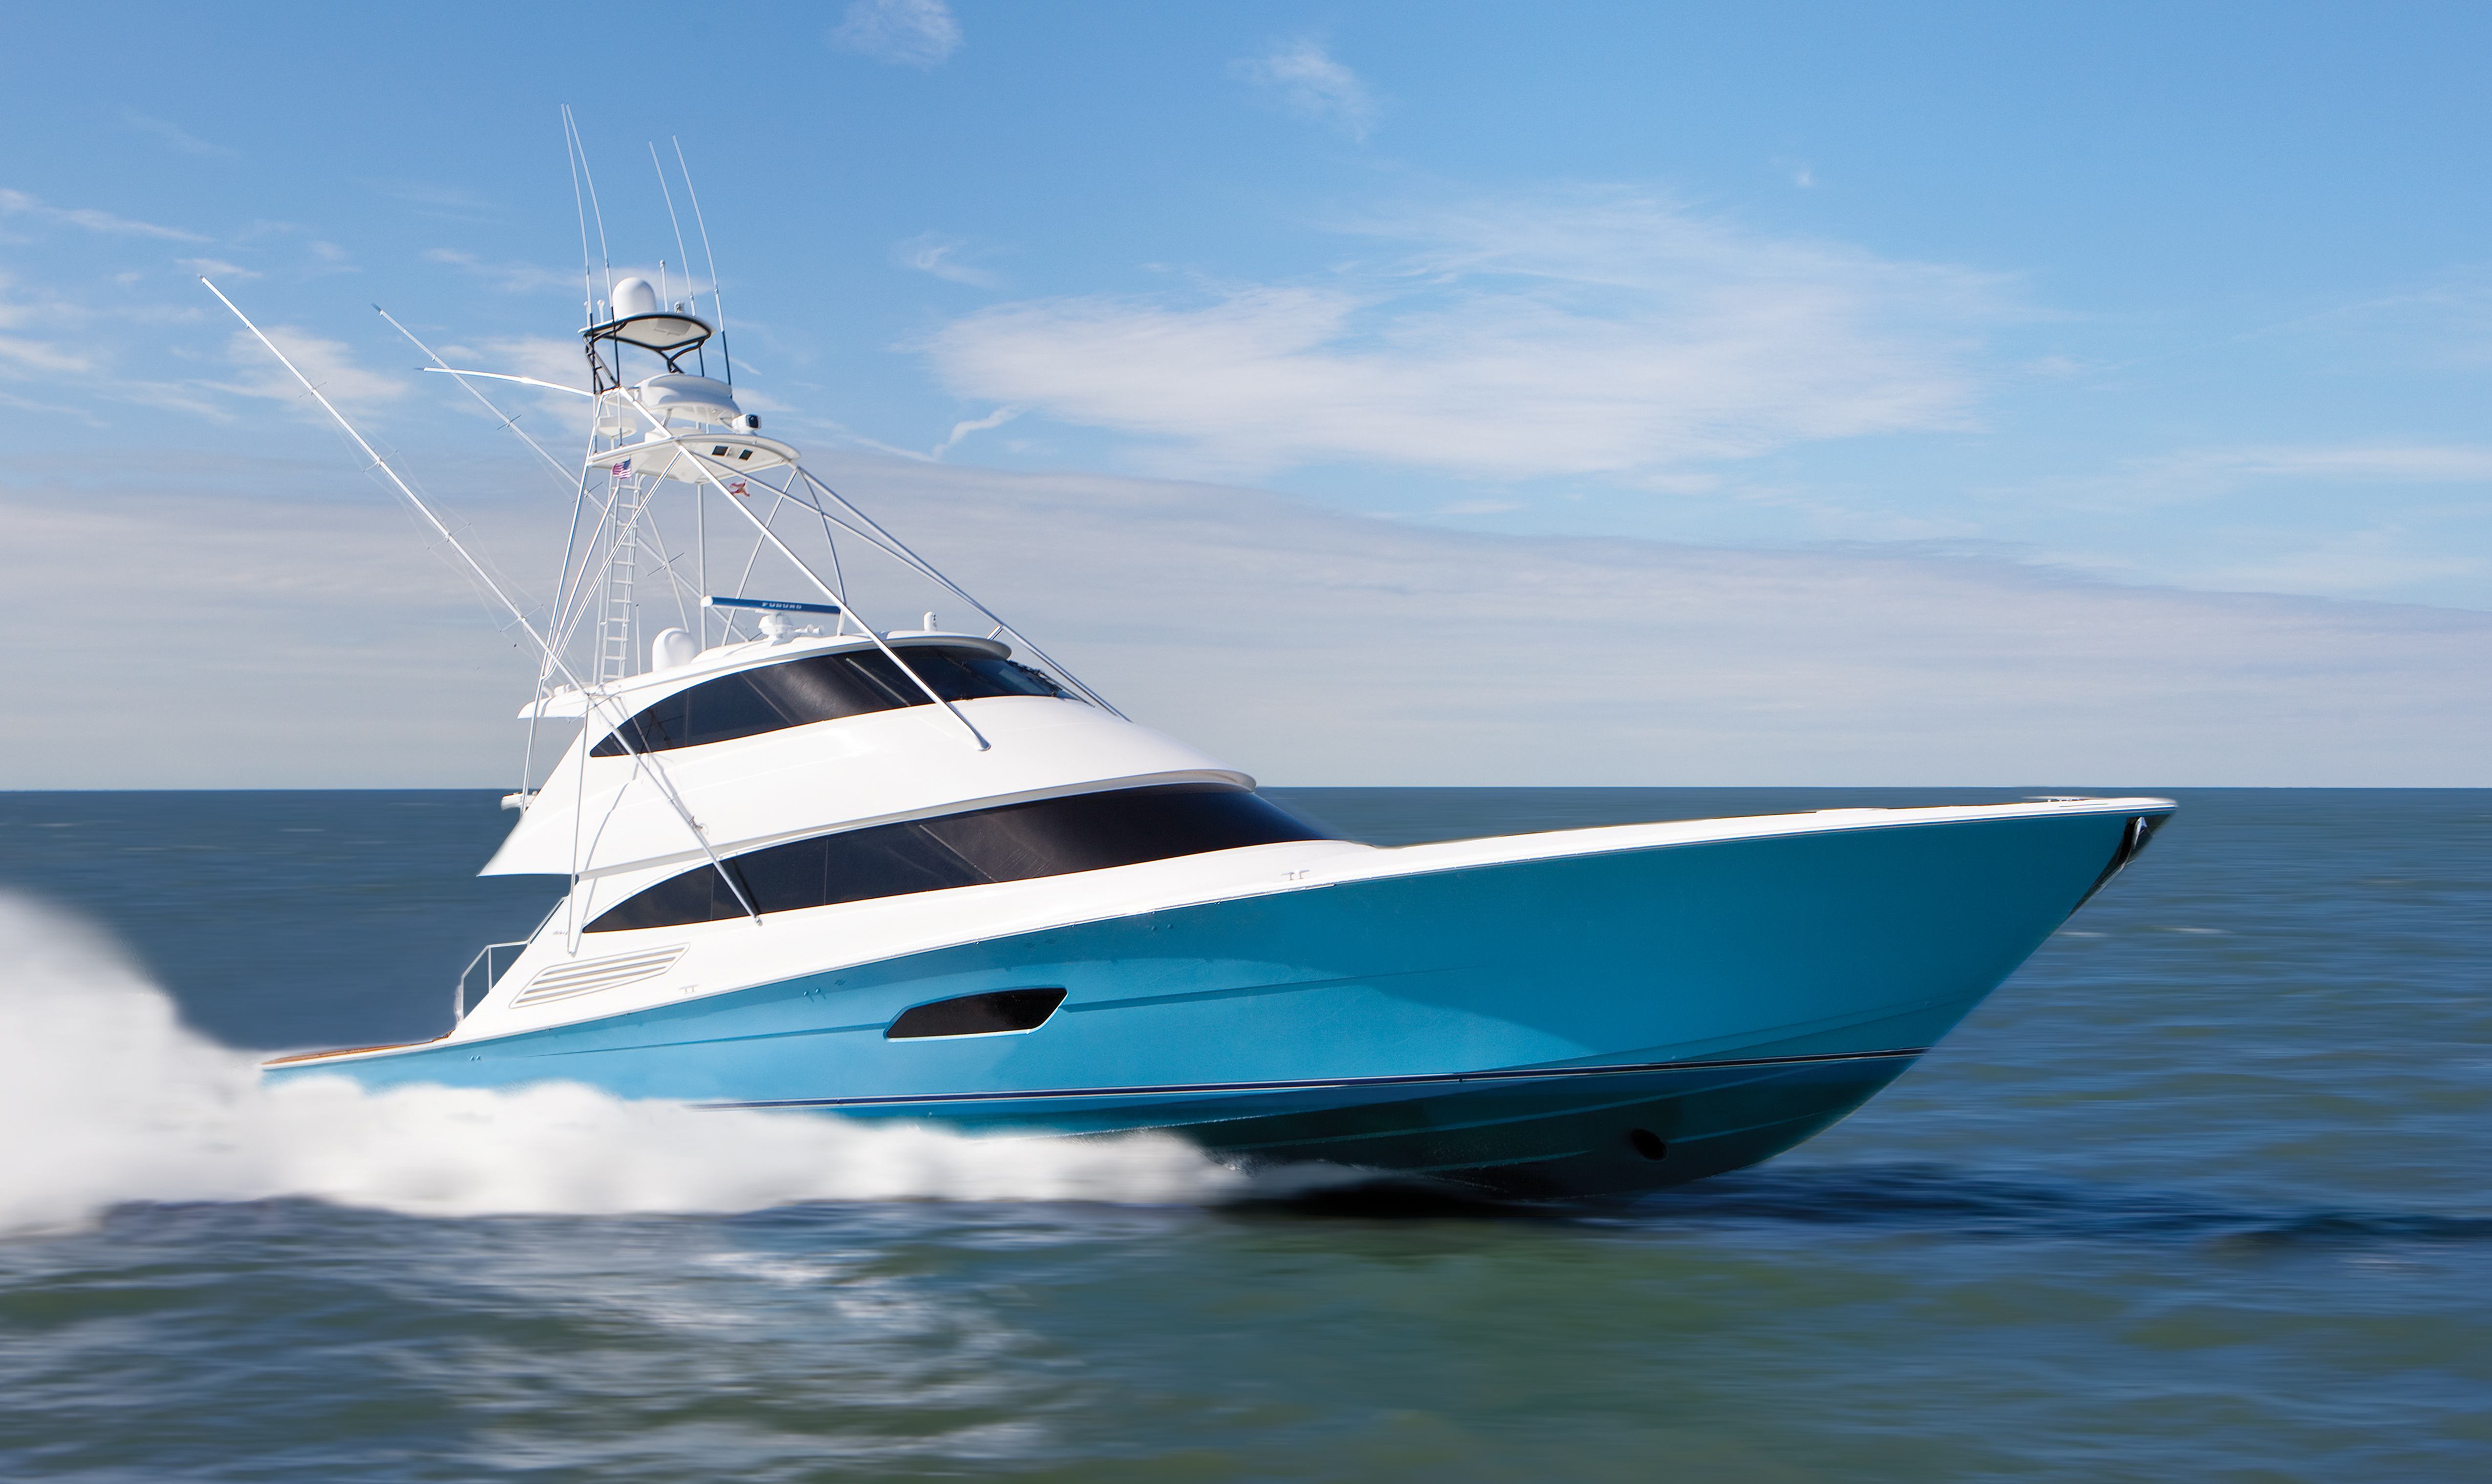 Inthebite sportfishing hullside paint trends for Sport fishing boats